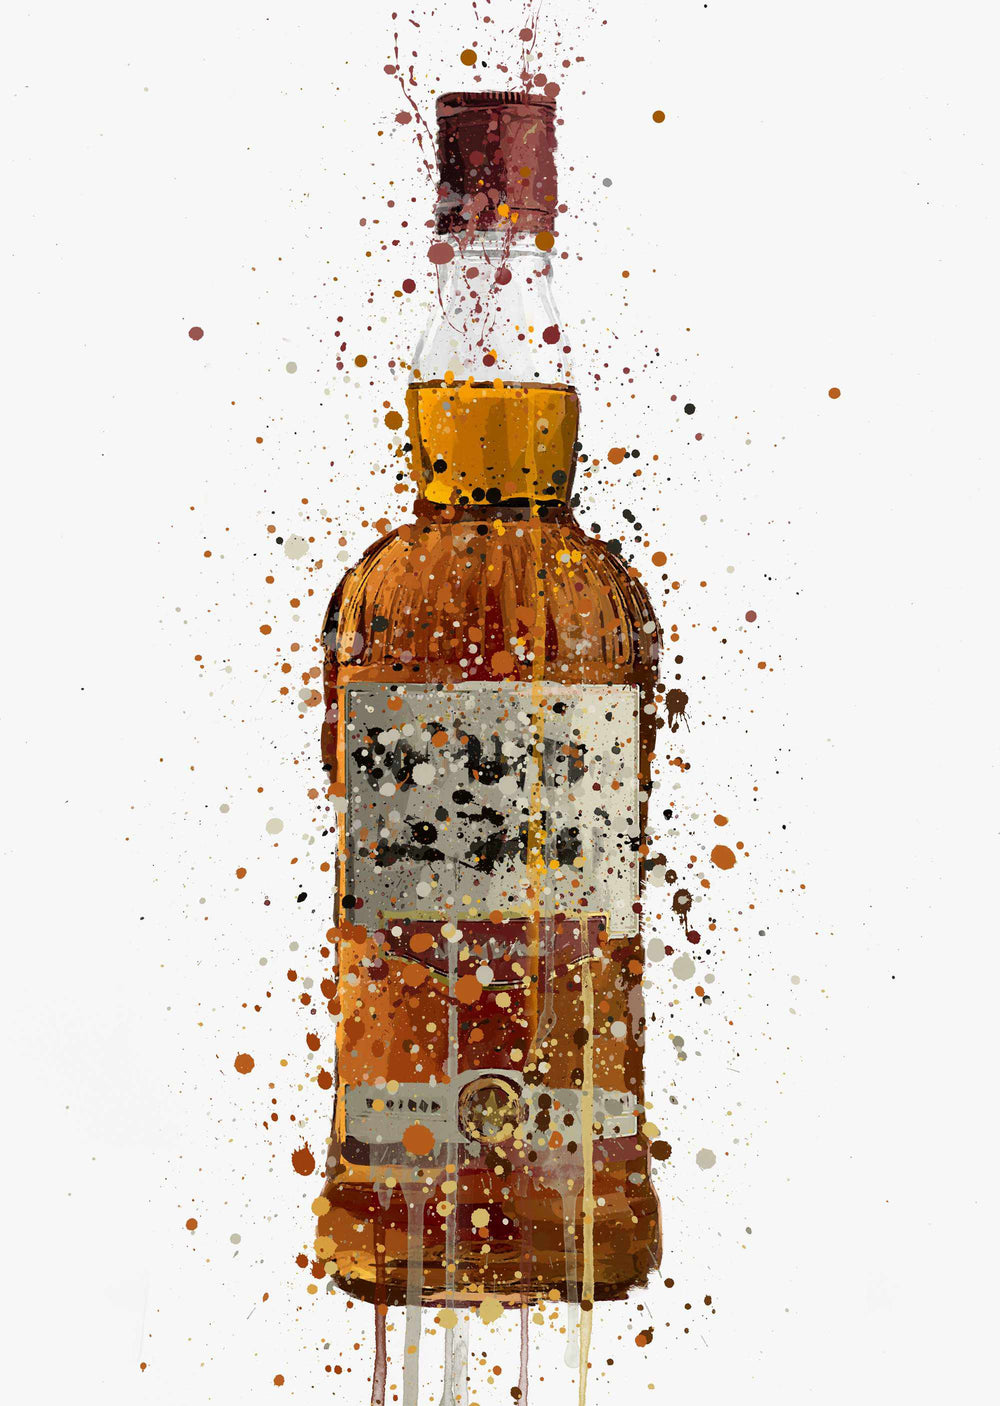 Liquor Bottle Wall Art Print 'Caramel'-We Love Prints